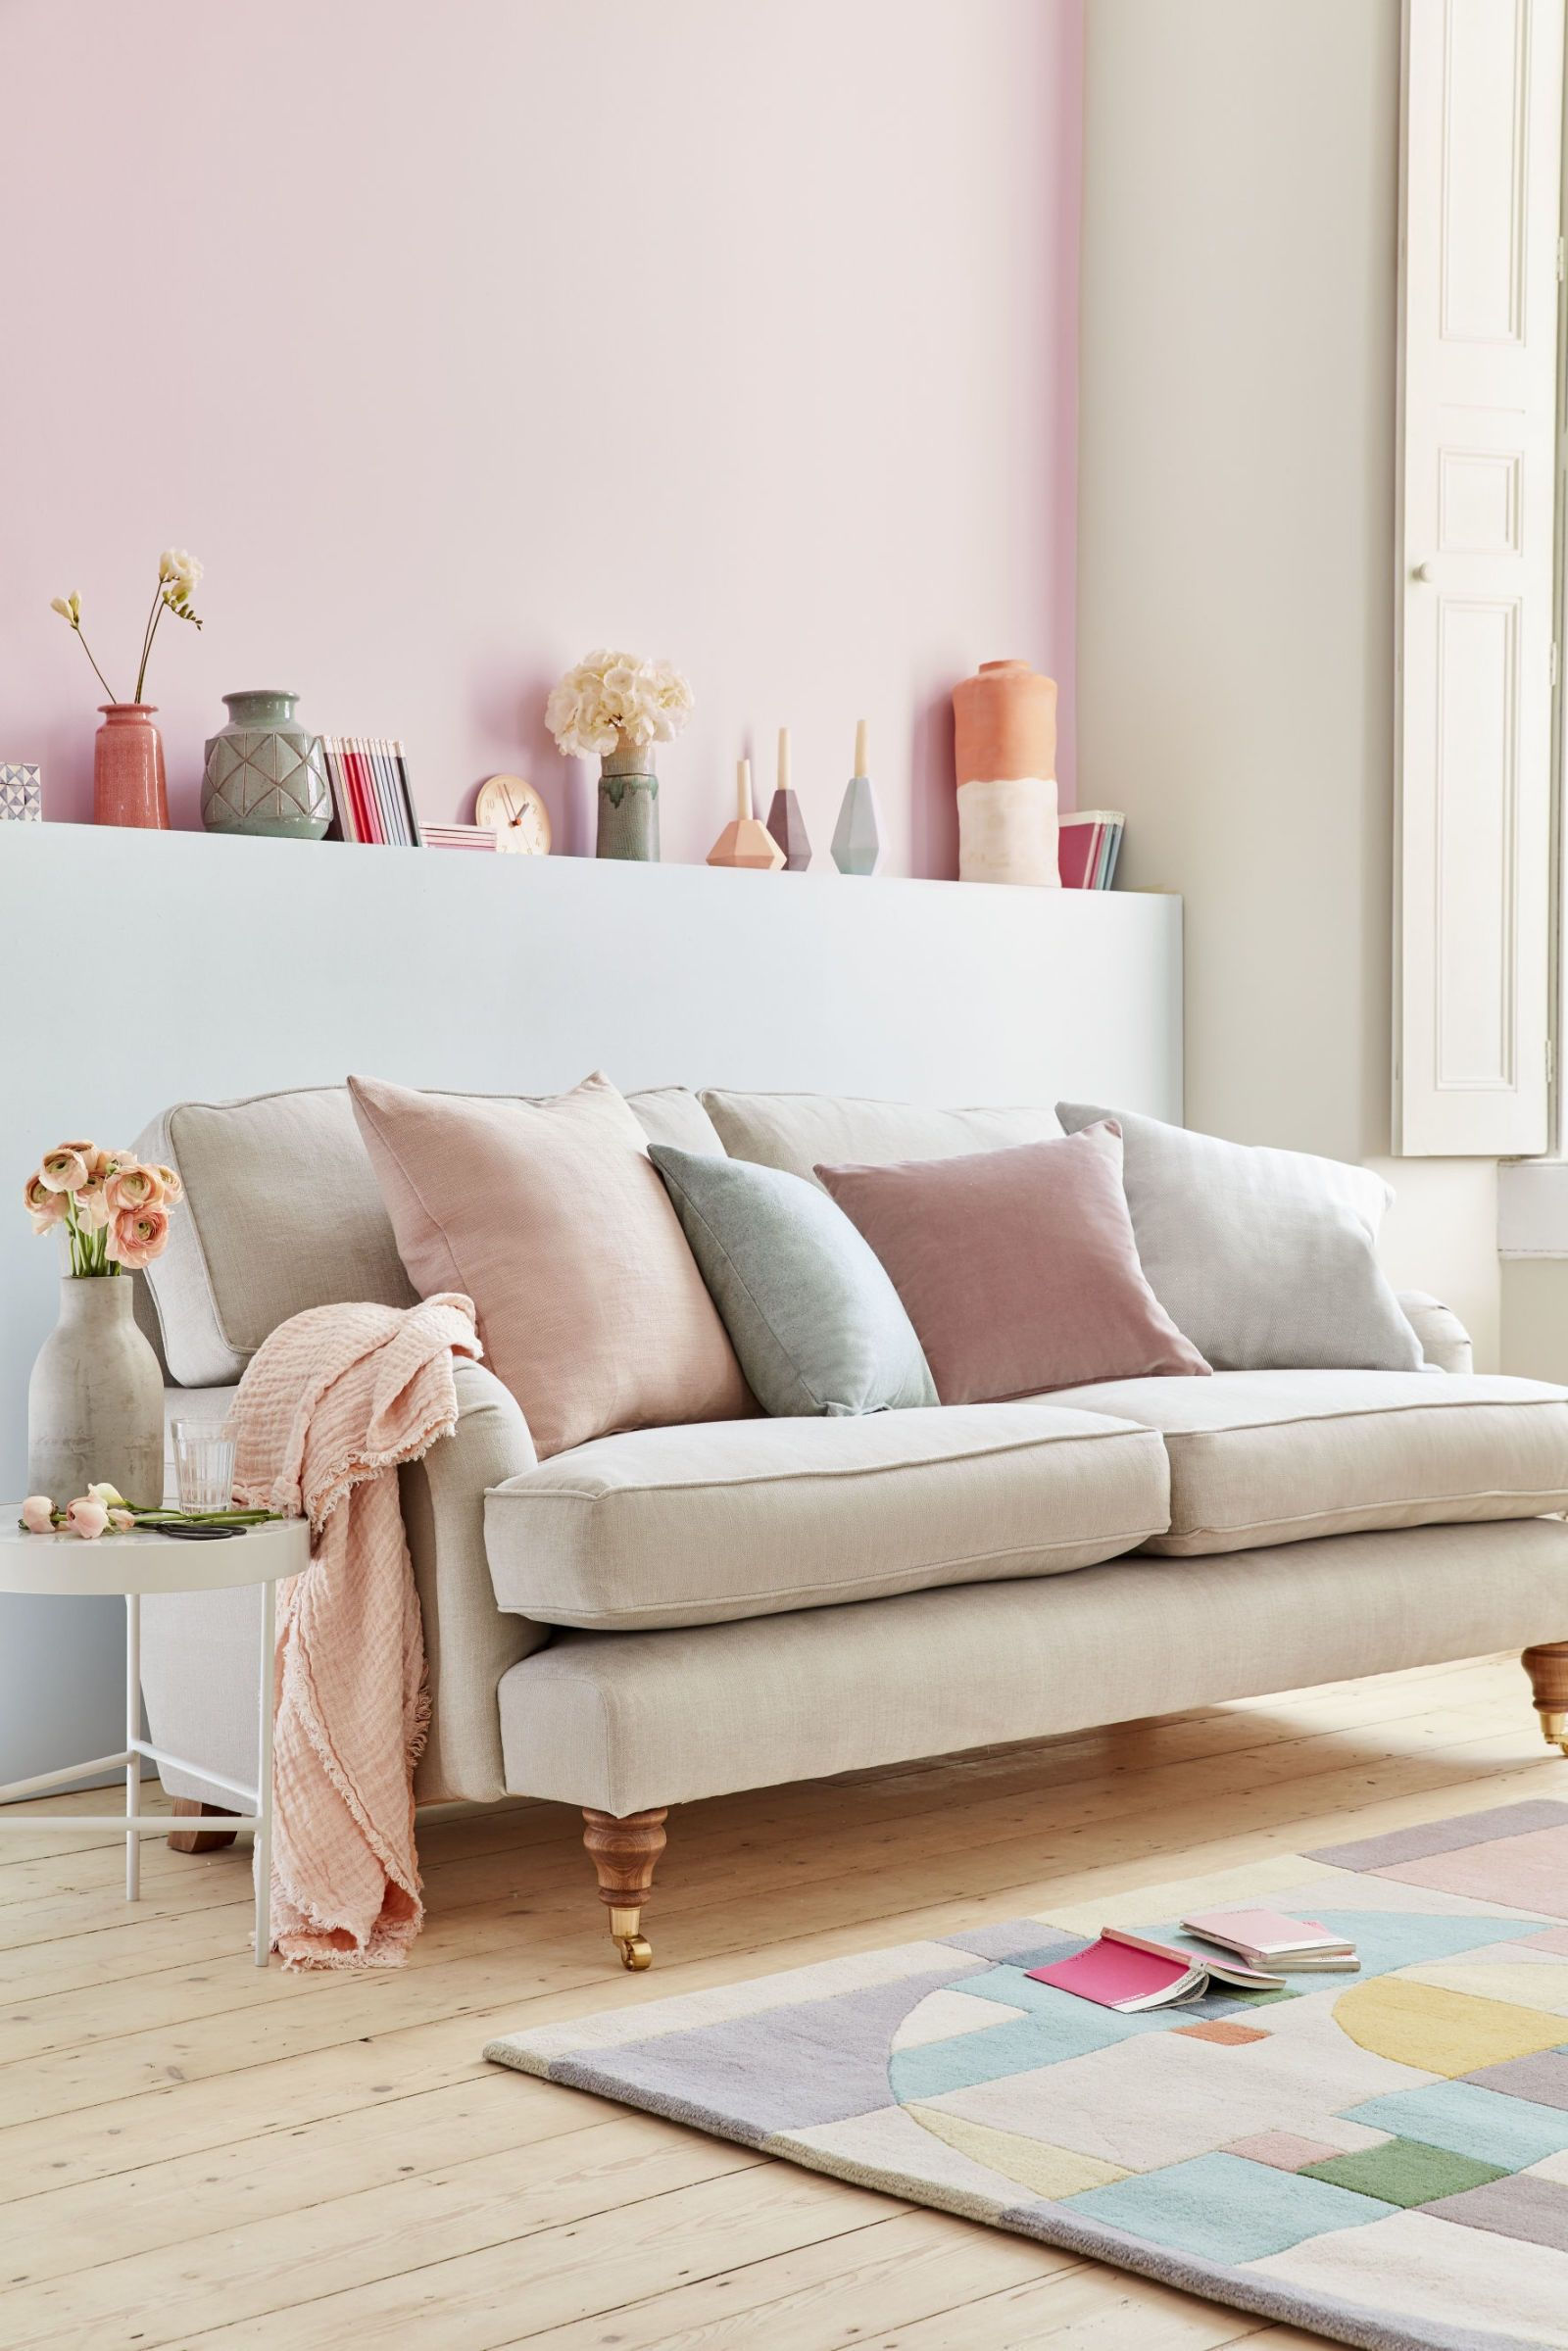 4 ways to achieve your dream living room | Taupe sofa, Gray color ...